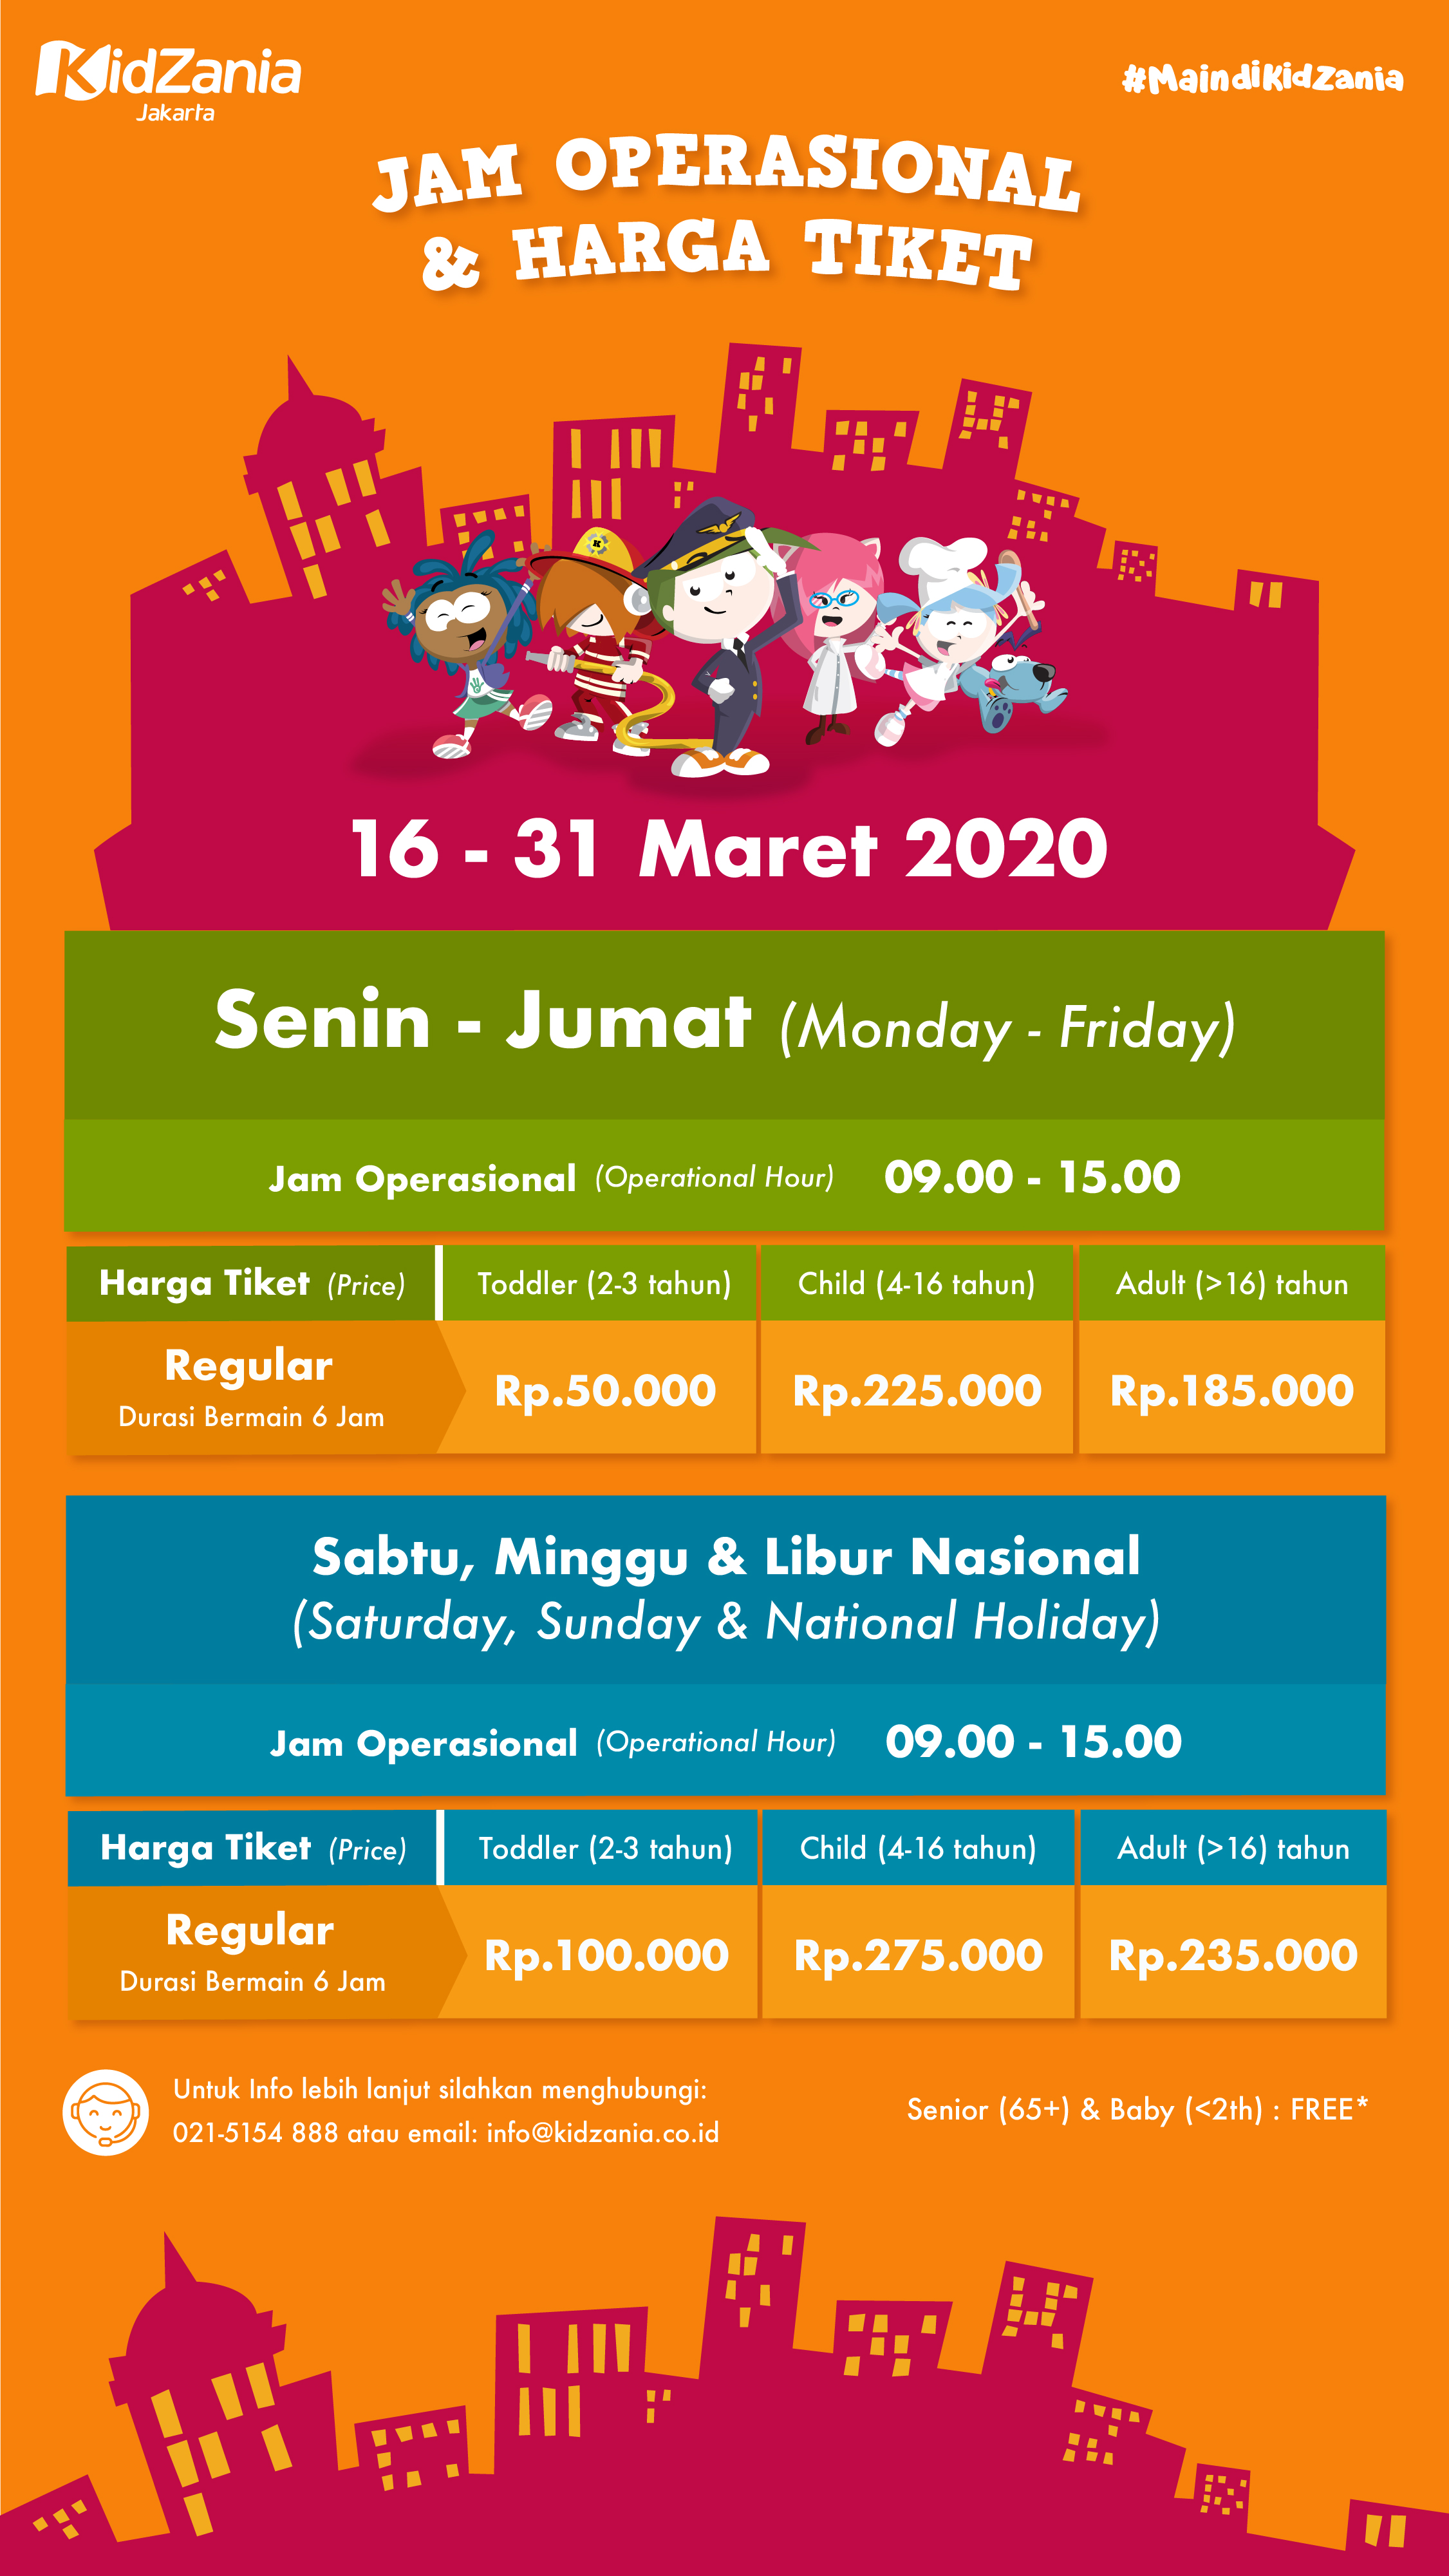 What Is Kidzania The Concept Our Story Kids Activitities Our Economy Security Accessibility Kidzania In The World Kz Journal About Kidzania Jakarta News Our Partners Careers Media Map Plan Your Visit Opening Time Services Ticket Prices How To